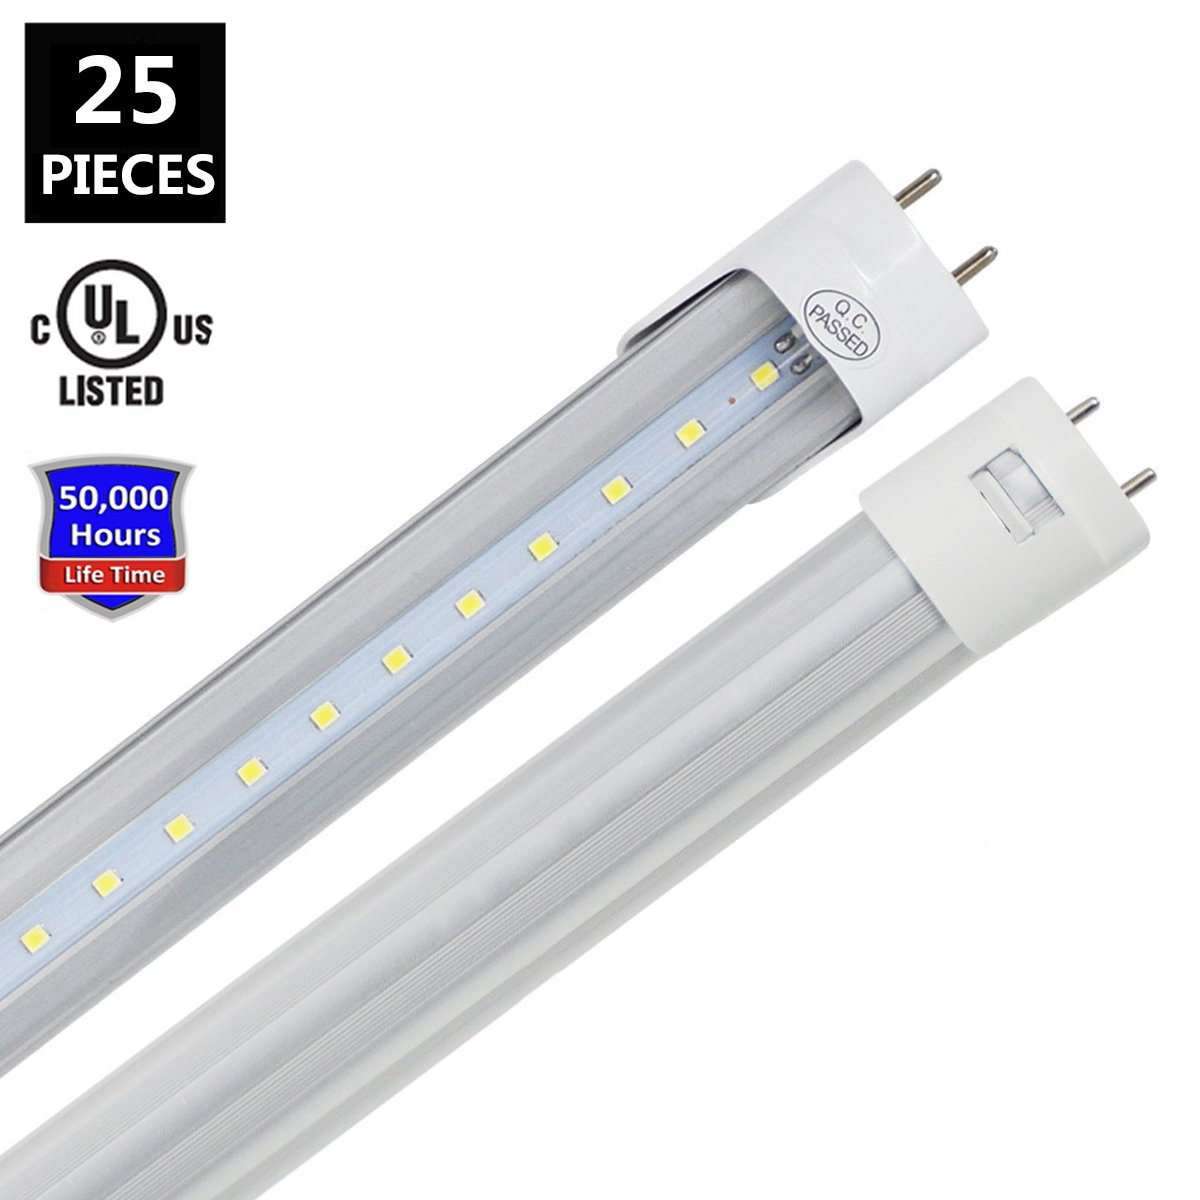 JESLED T8 LED Light Tube, 4FT, 22W (45W Fluorescent Replacement), 6000K (Cool White), 2310LM, Clear Cover, Dual-End Powered, Two Pin G13 Bulbs Lighting Fixtures, Works Without Ballast (25-Pack)